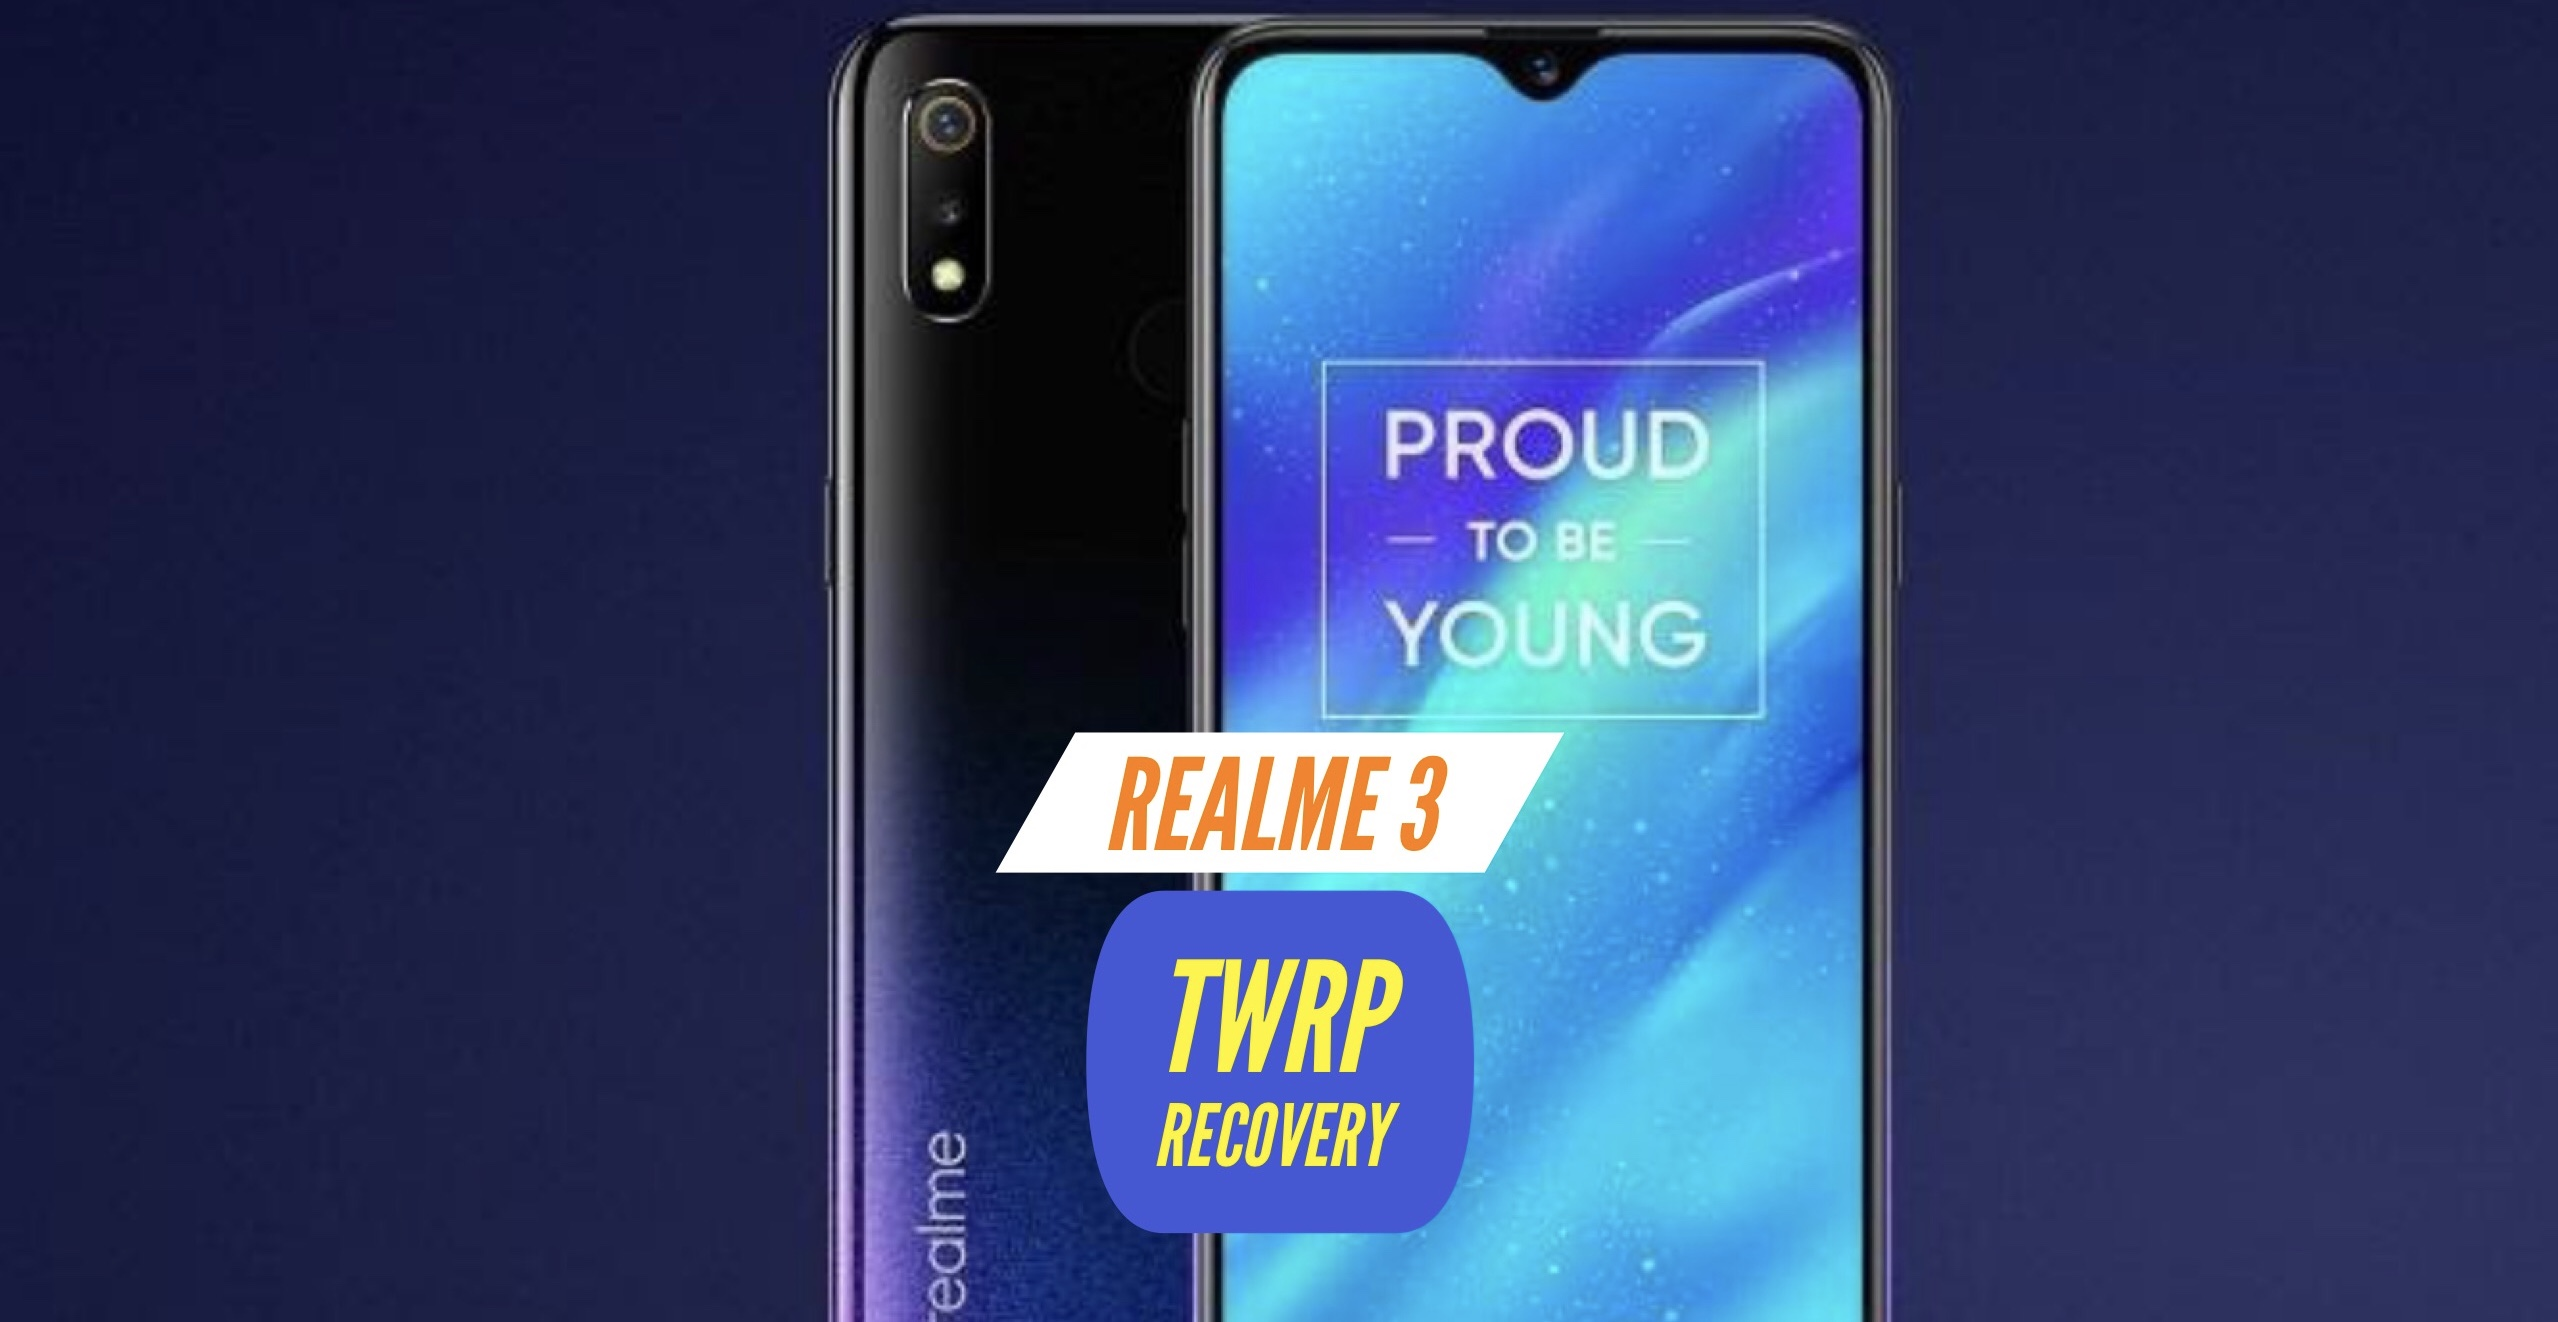 Realme 3 TWRP Recovery Installation - Two Easy METHODS!